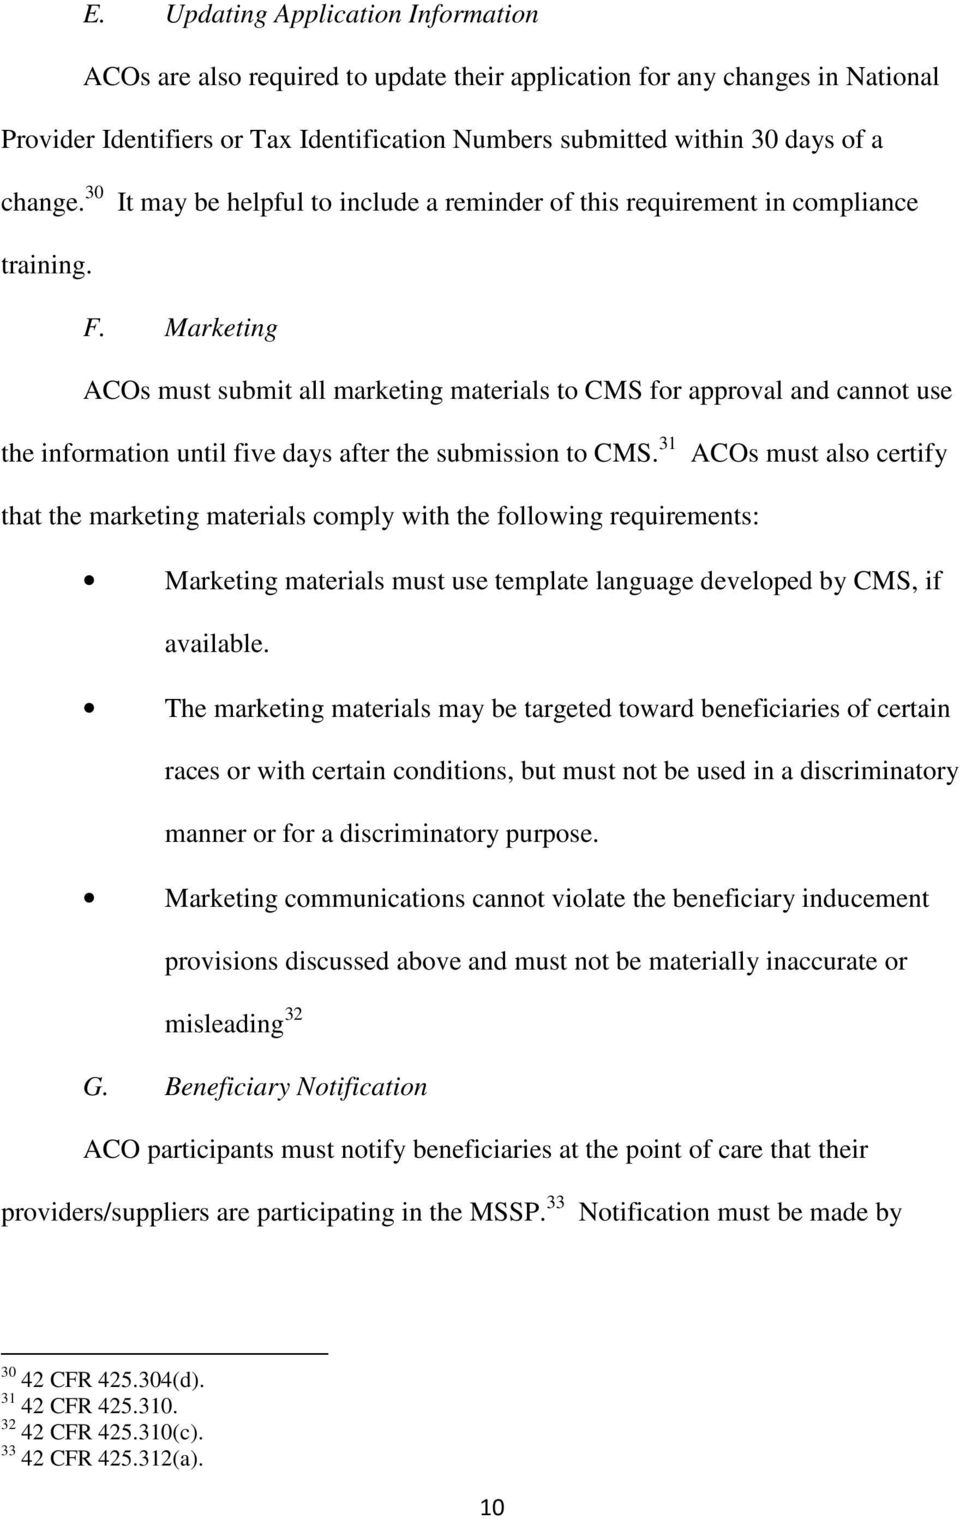 Marketing ACOs must submit all marketing materials to CMS for approval and cannot use the information until five days after the submission to CMS.